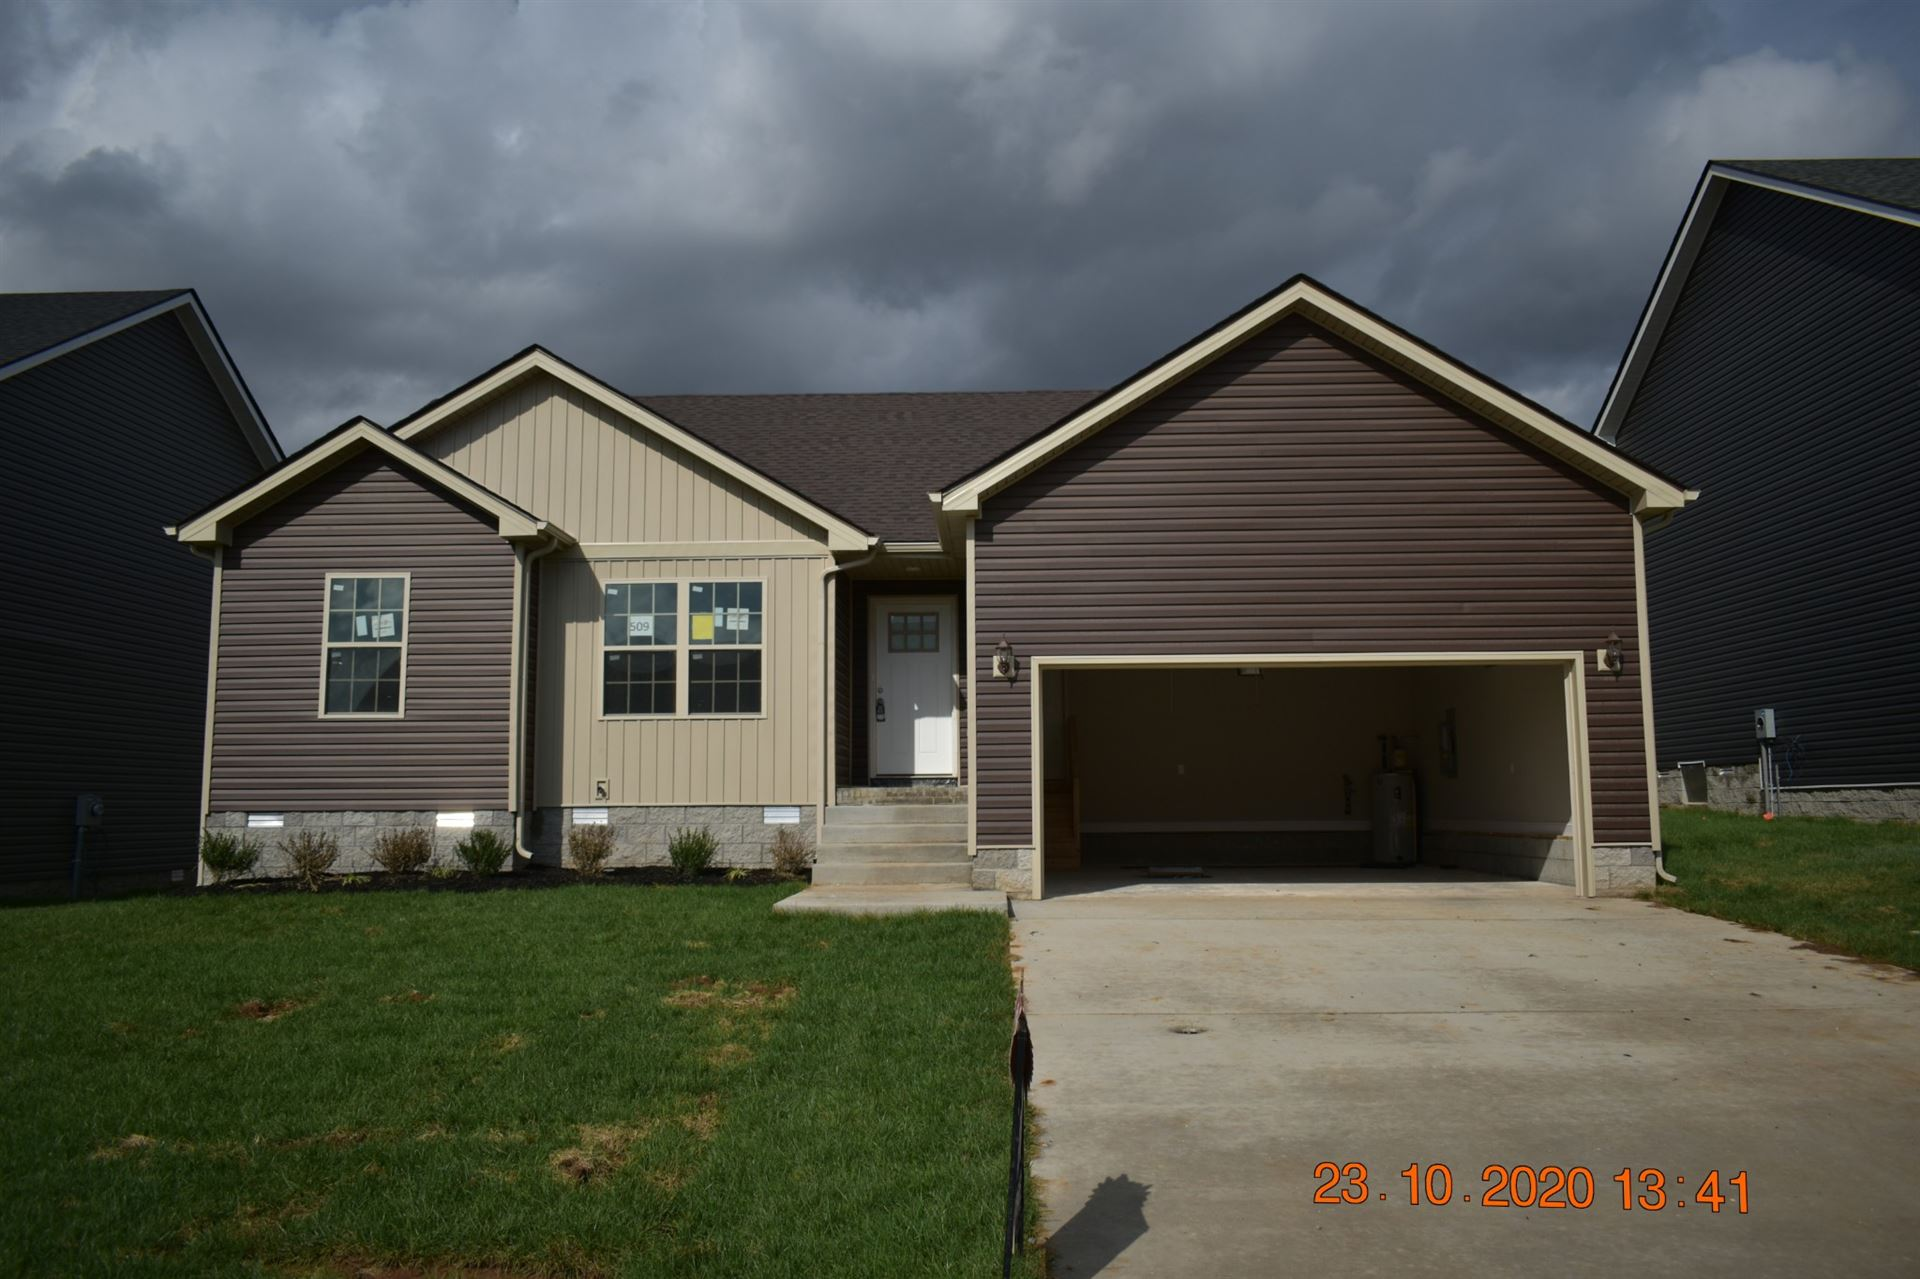 509 Autumn Creek, Clarksville, TN 37042 - MLS#: 2180692